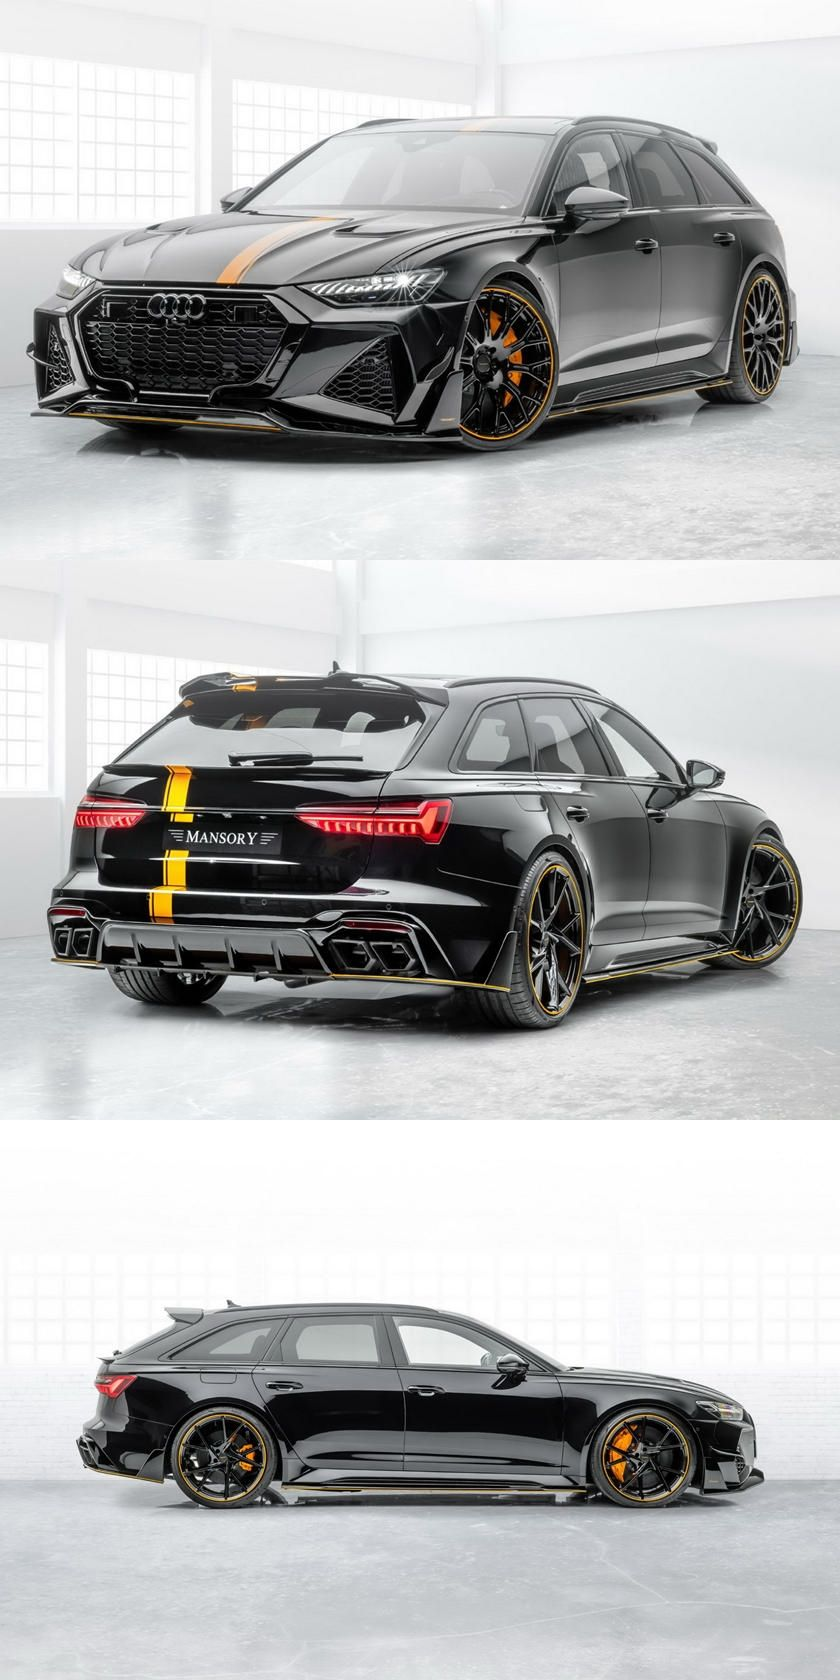 Mansory Transforms Audi Rs6 Avant Into 720 Hp Super Wagon 0 62 Mph In The Super Fast Station Wagon Now Takes Just 3 2 Seconds In 2020 Audi Rs6 Audi Cars Audi Wagon